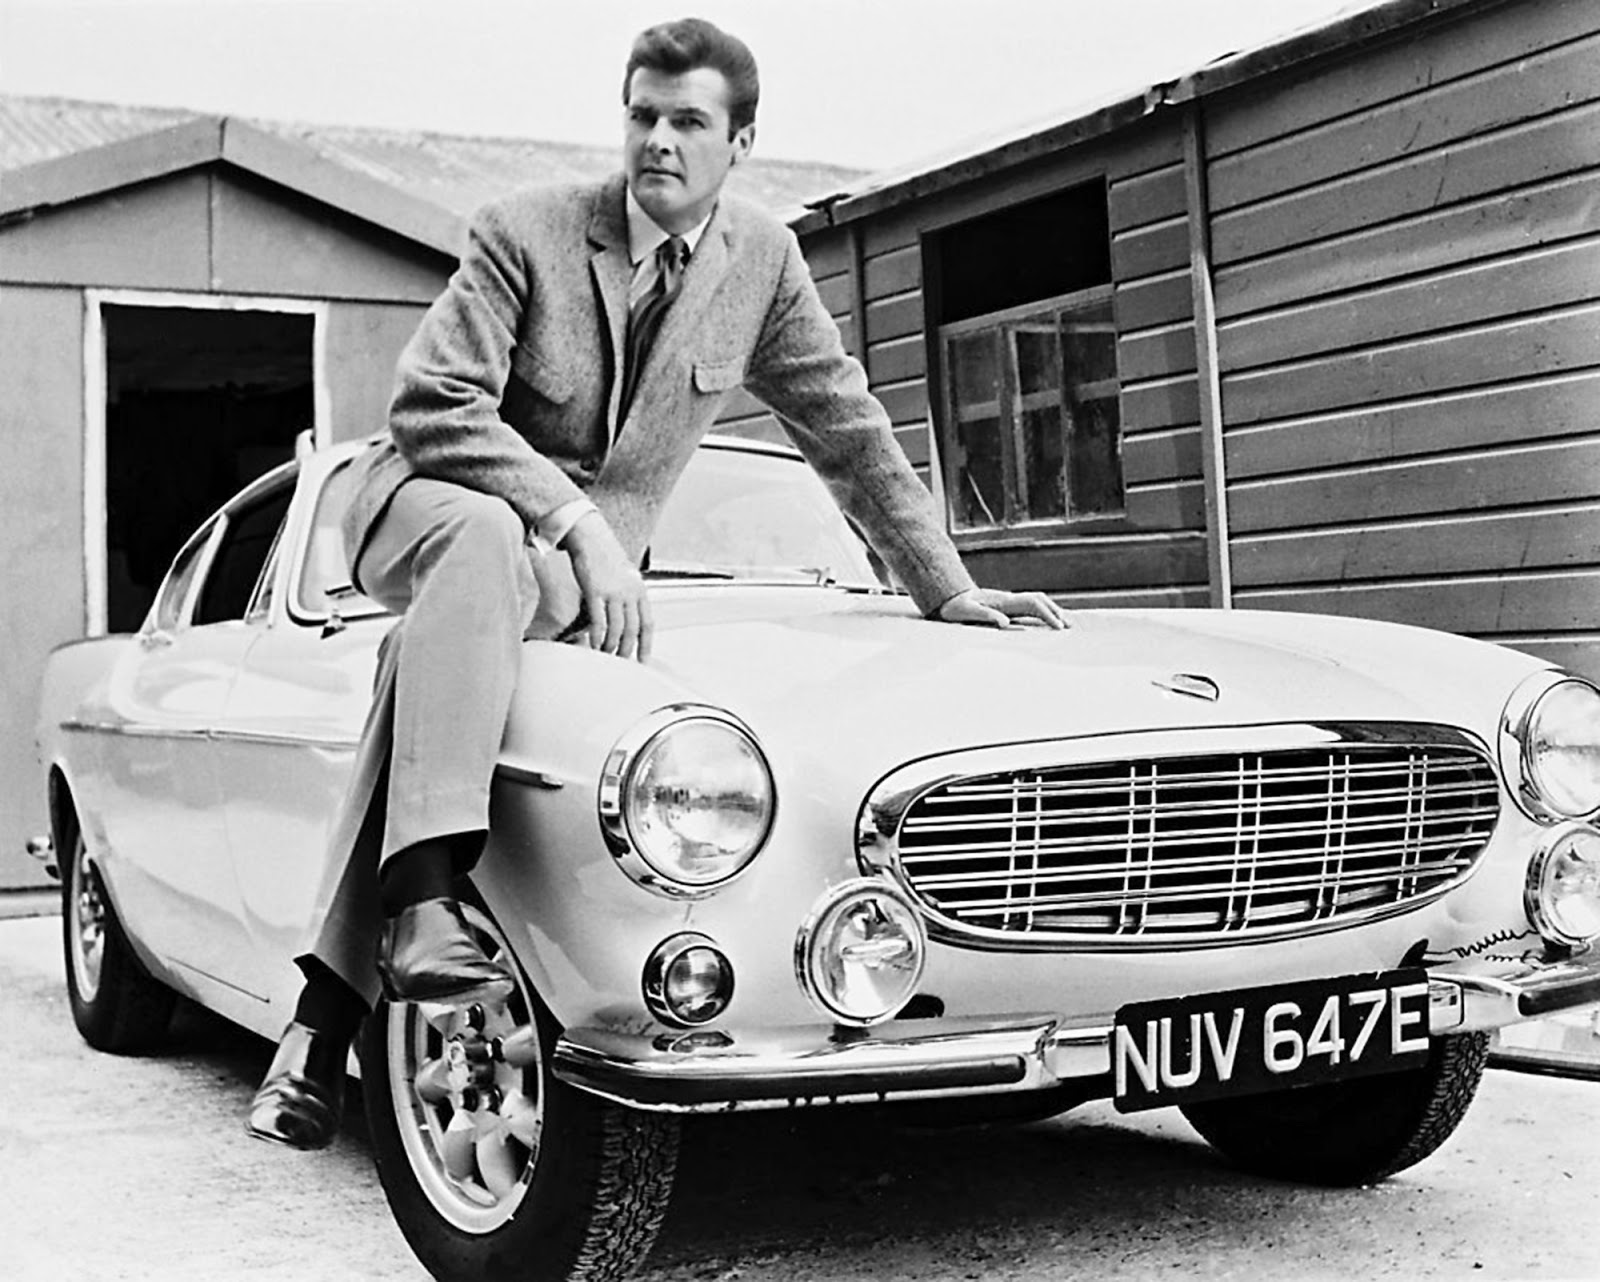 roger_moore_with_saint_volvo_nuv_647e.jpg